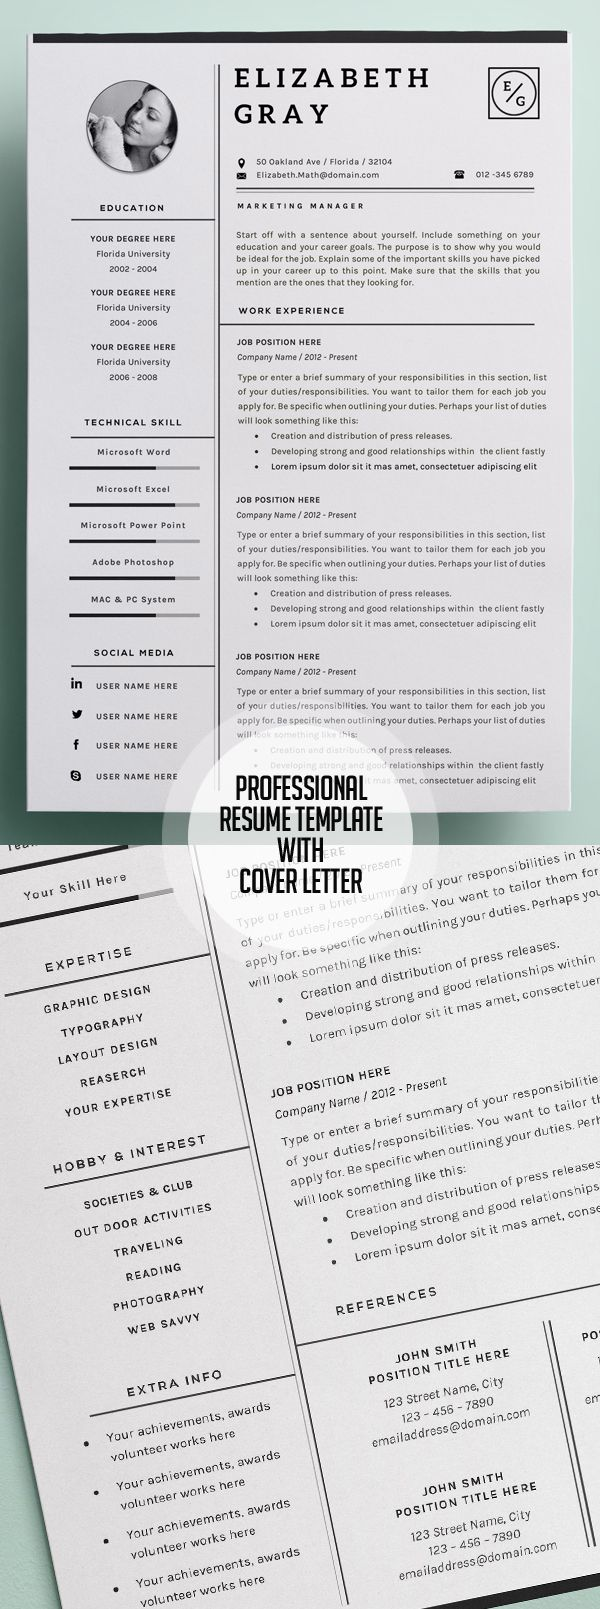 Opposenewapstandardsus  Ravishing  Resume Ideas On Pinterest  Resume Resume Templates And  With Hot Professional And Modern Resume Template With Page Cover Cvtemplate With Endearing Resume For Property Manager Also Cv Resume Format In Addition Stay At Home Mom Returning To Work Resume And Simple Resume Design As Well As Project Based Resume Additionally No Experience Resume Examples From Pinterestcom With Opposenewapstandardsus  Hot  Resume Ideas On Pinterest  Resume Resume Templates And  With Endearing Professional And Modern Resume Template With Page Cover Cvtemplate And Ravishing Resume For Property Manager Also Cv Resume Format In Addition Stay At Home Mom Returning To Work Resume From Pinterestcom